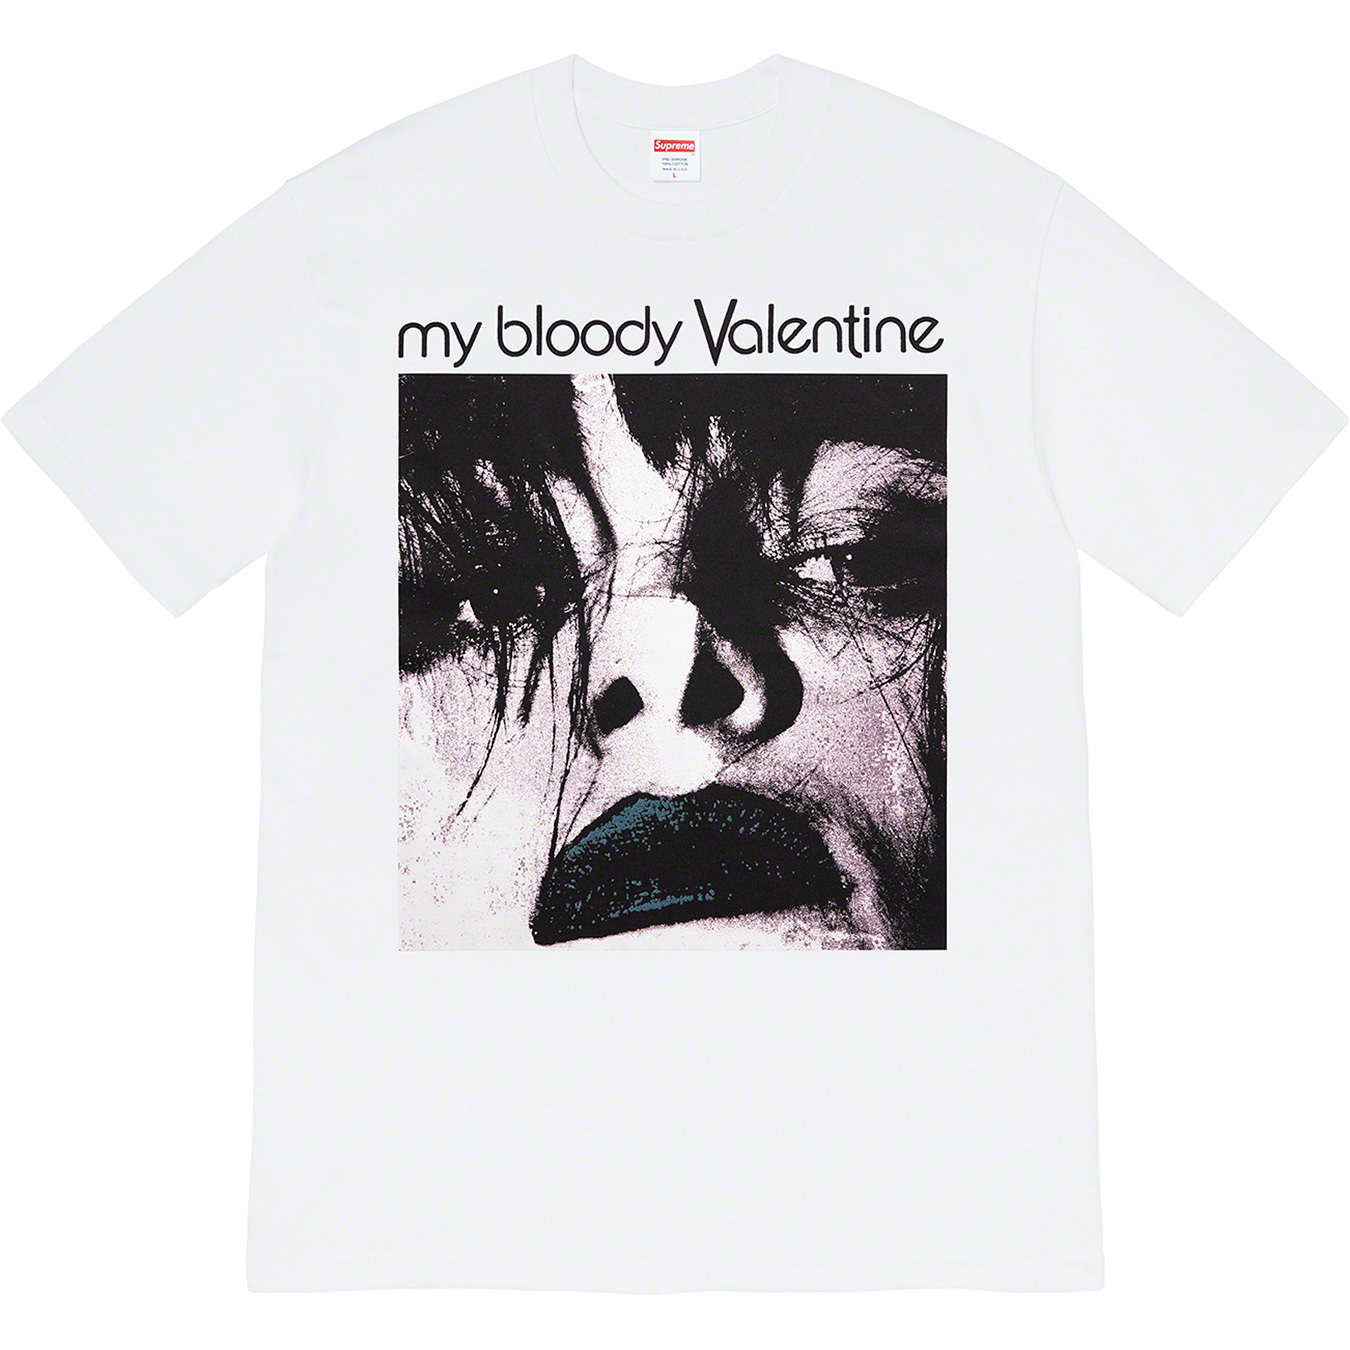 supreme-my-bloody-valentine-20ss-collaboration-release-20200425-week9